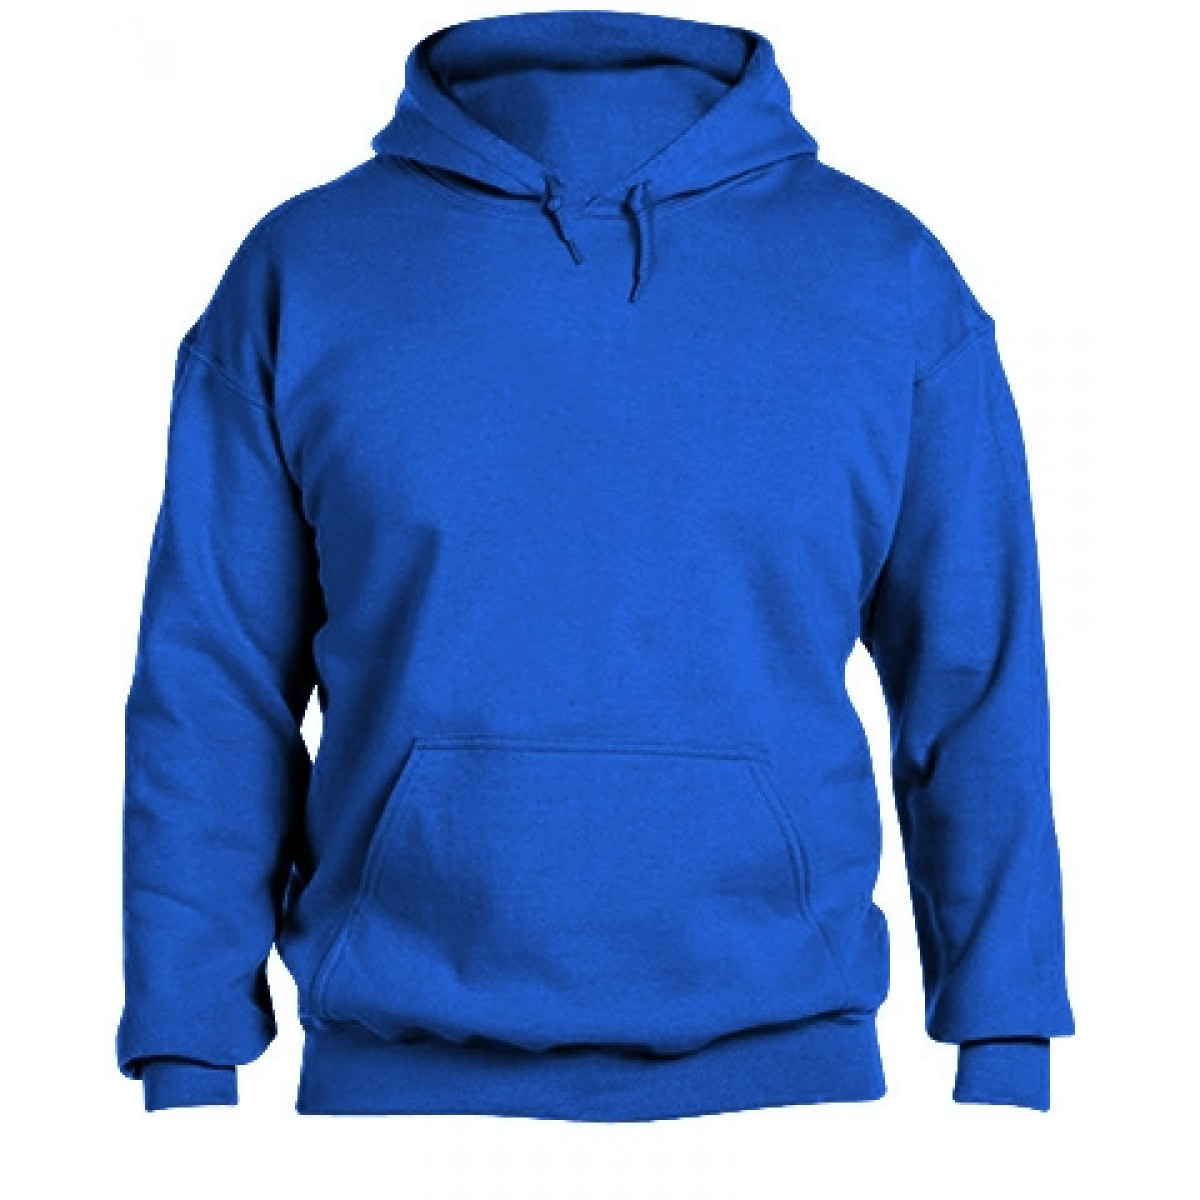 Solid Hooded Sweatshirt  50/50 Heavy Blend-Royal Blue-L